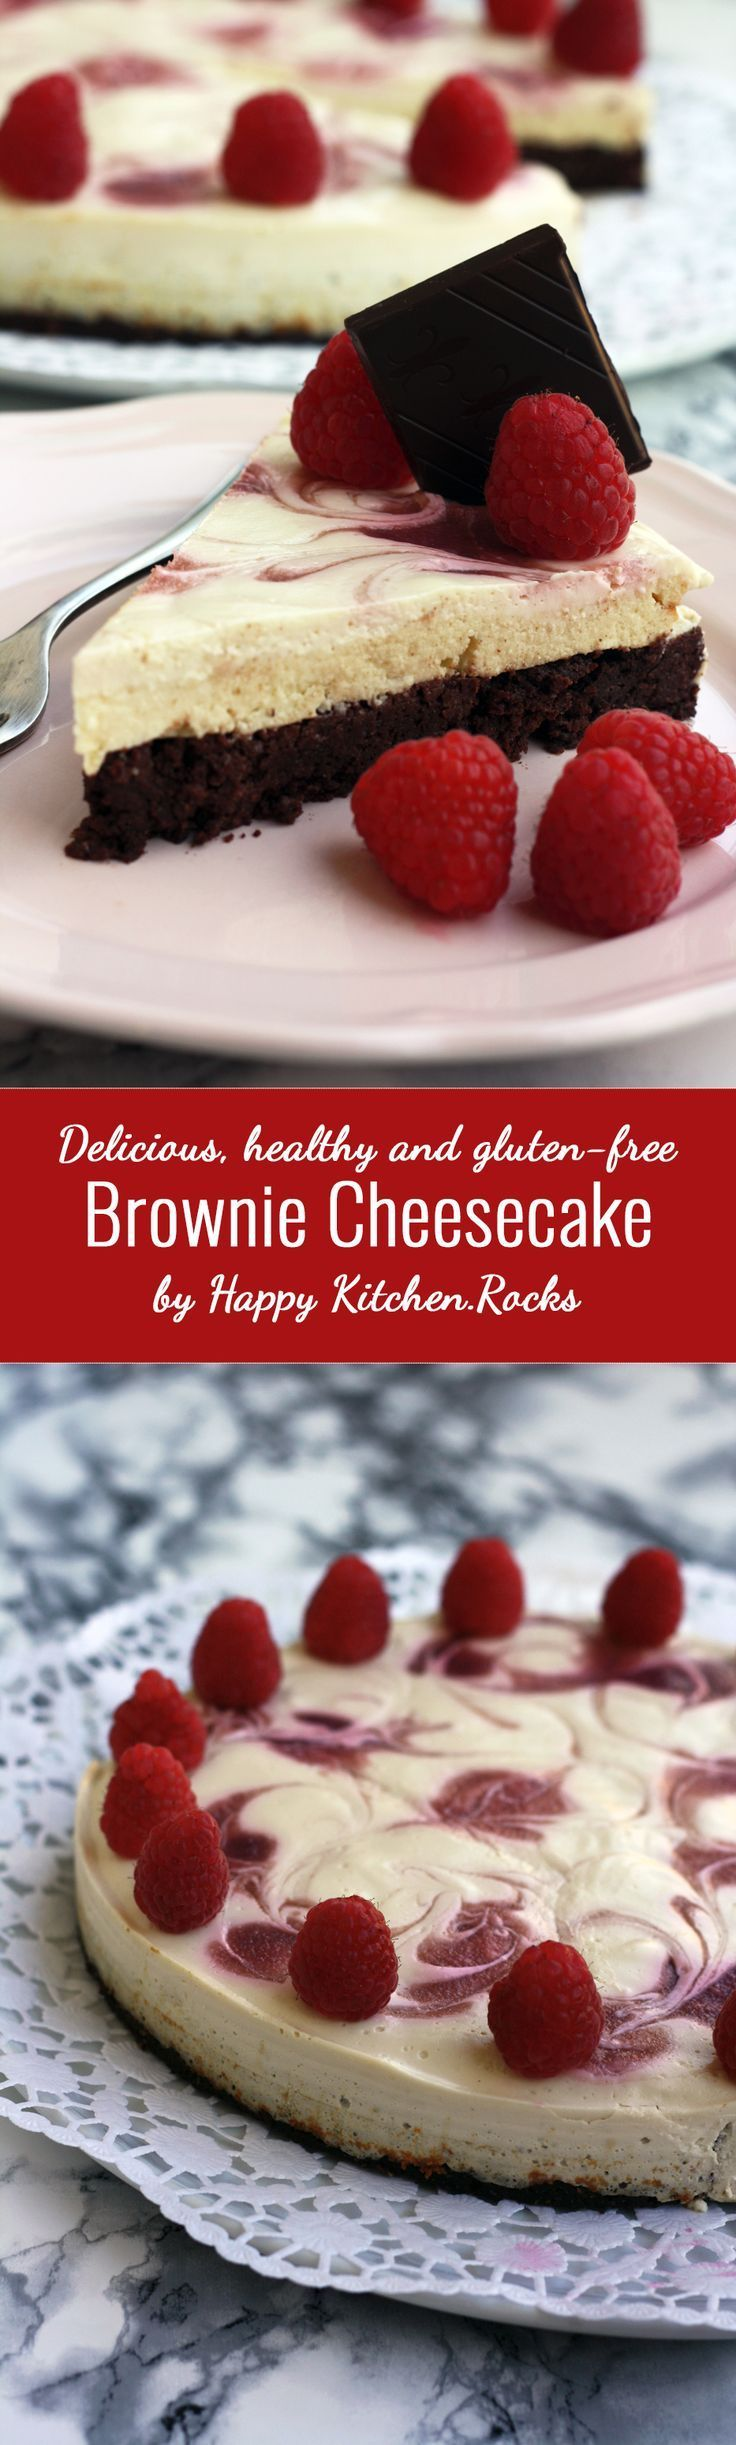 ... gluten-free brownie cheesecake with raspberry swirl. Easy 50-min